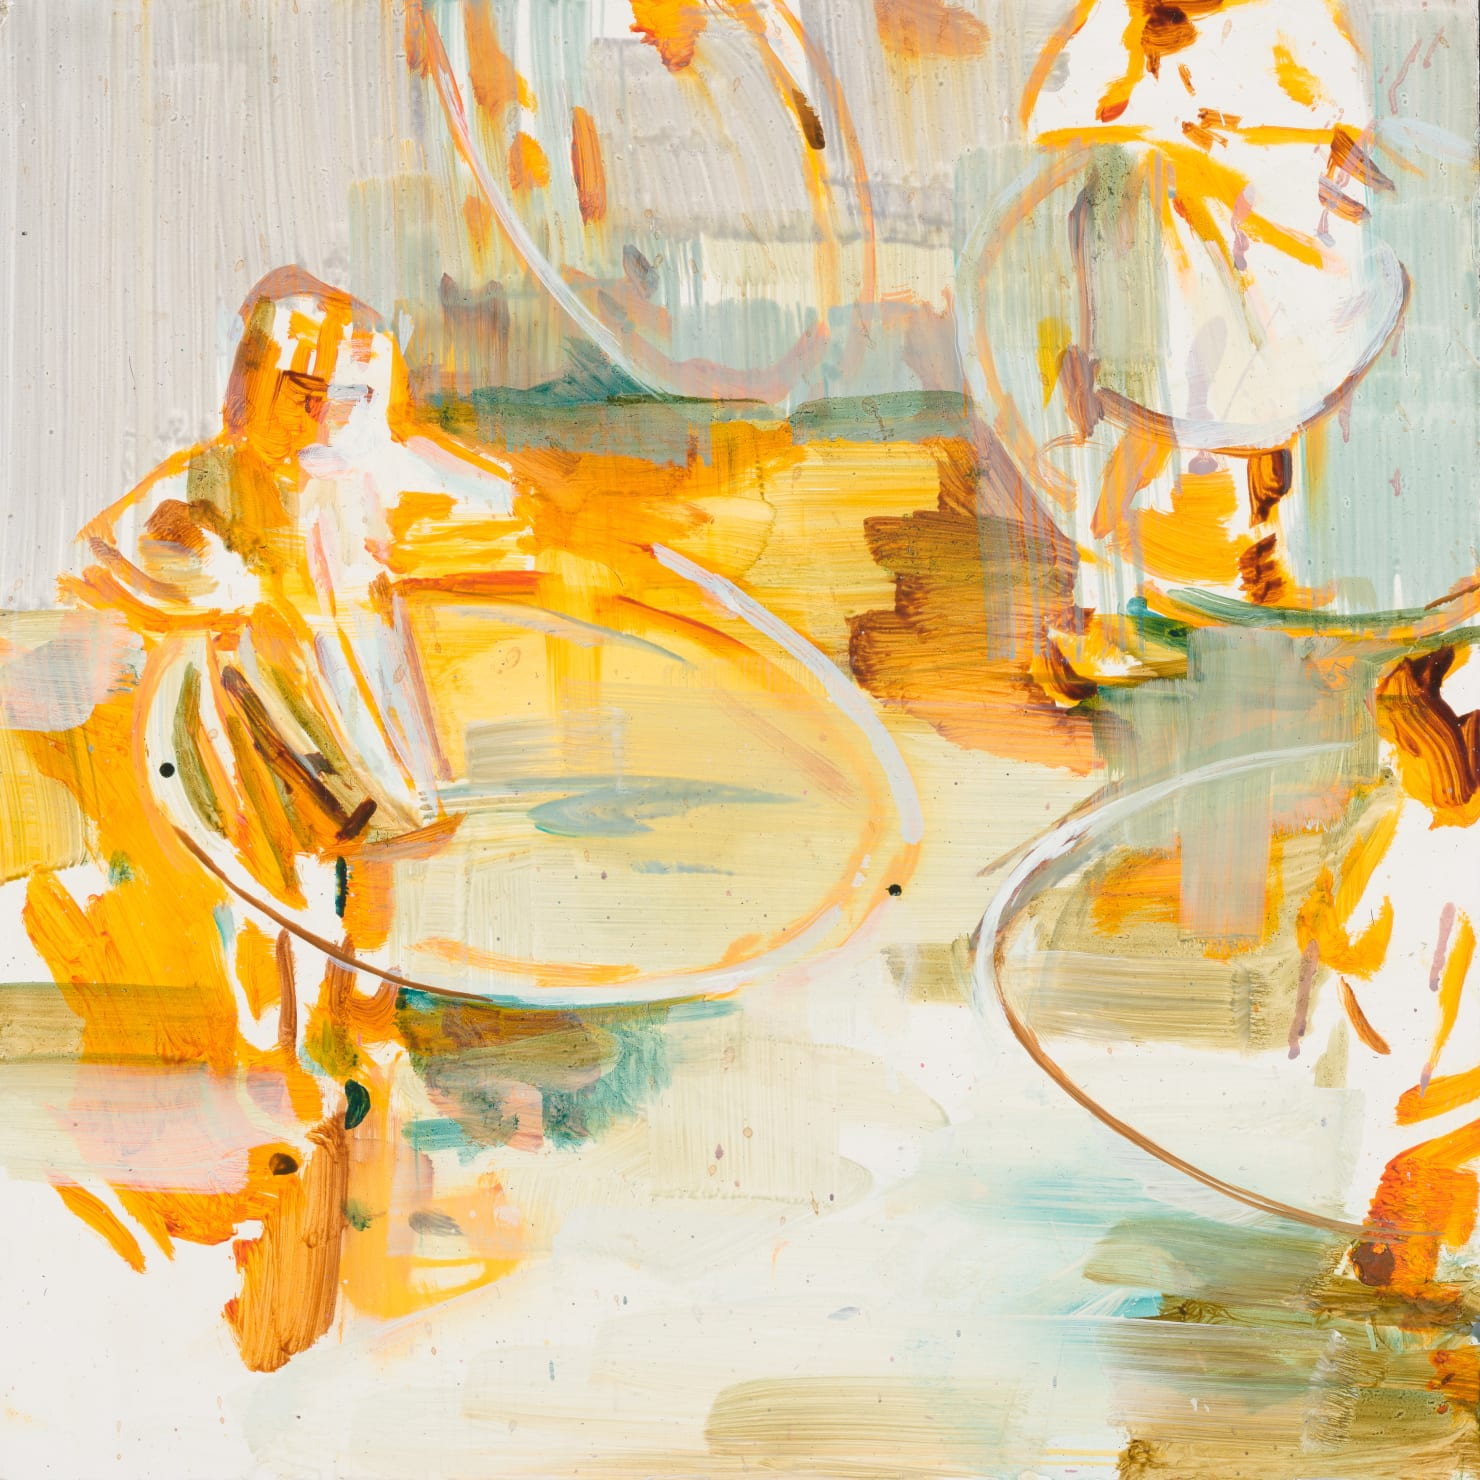 Katharine Le Hardy, Circles everywhere, yellow, 2021